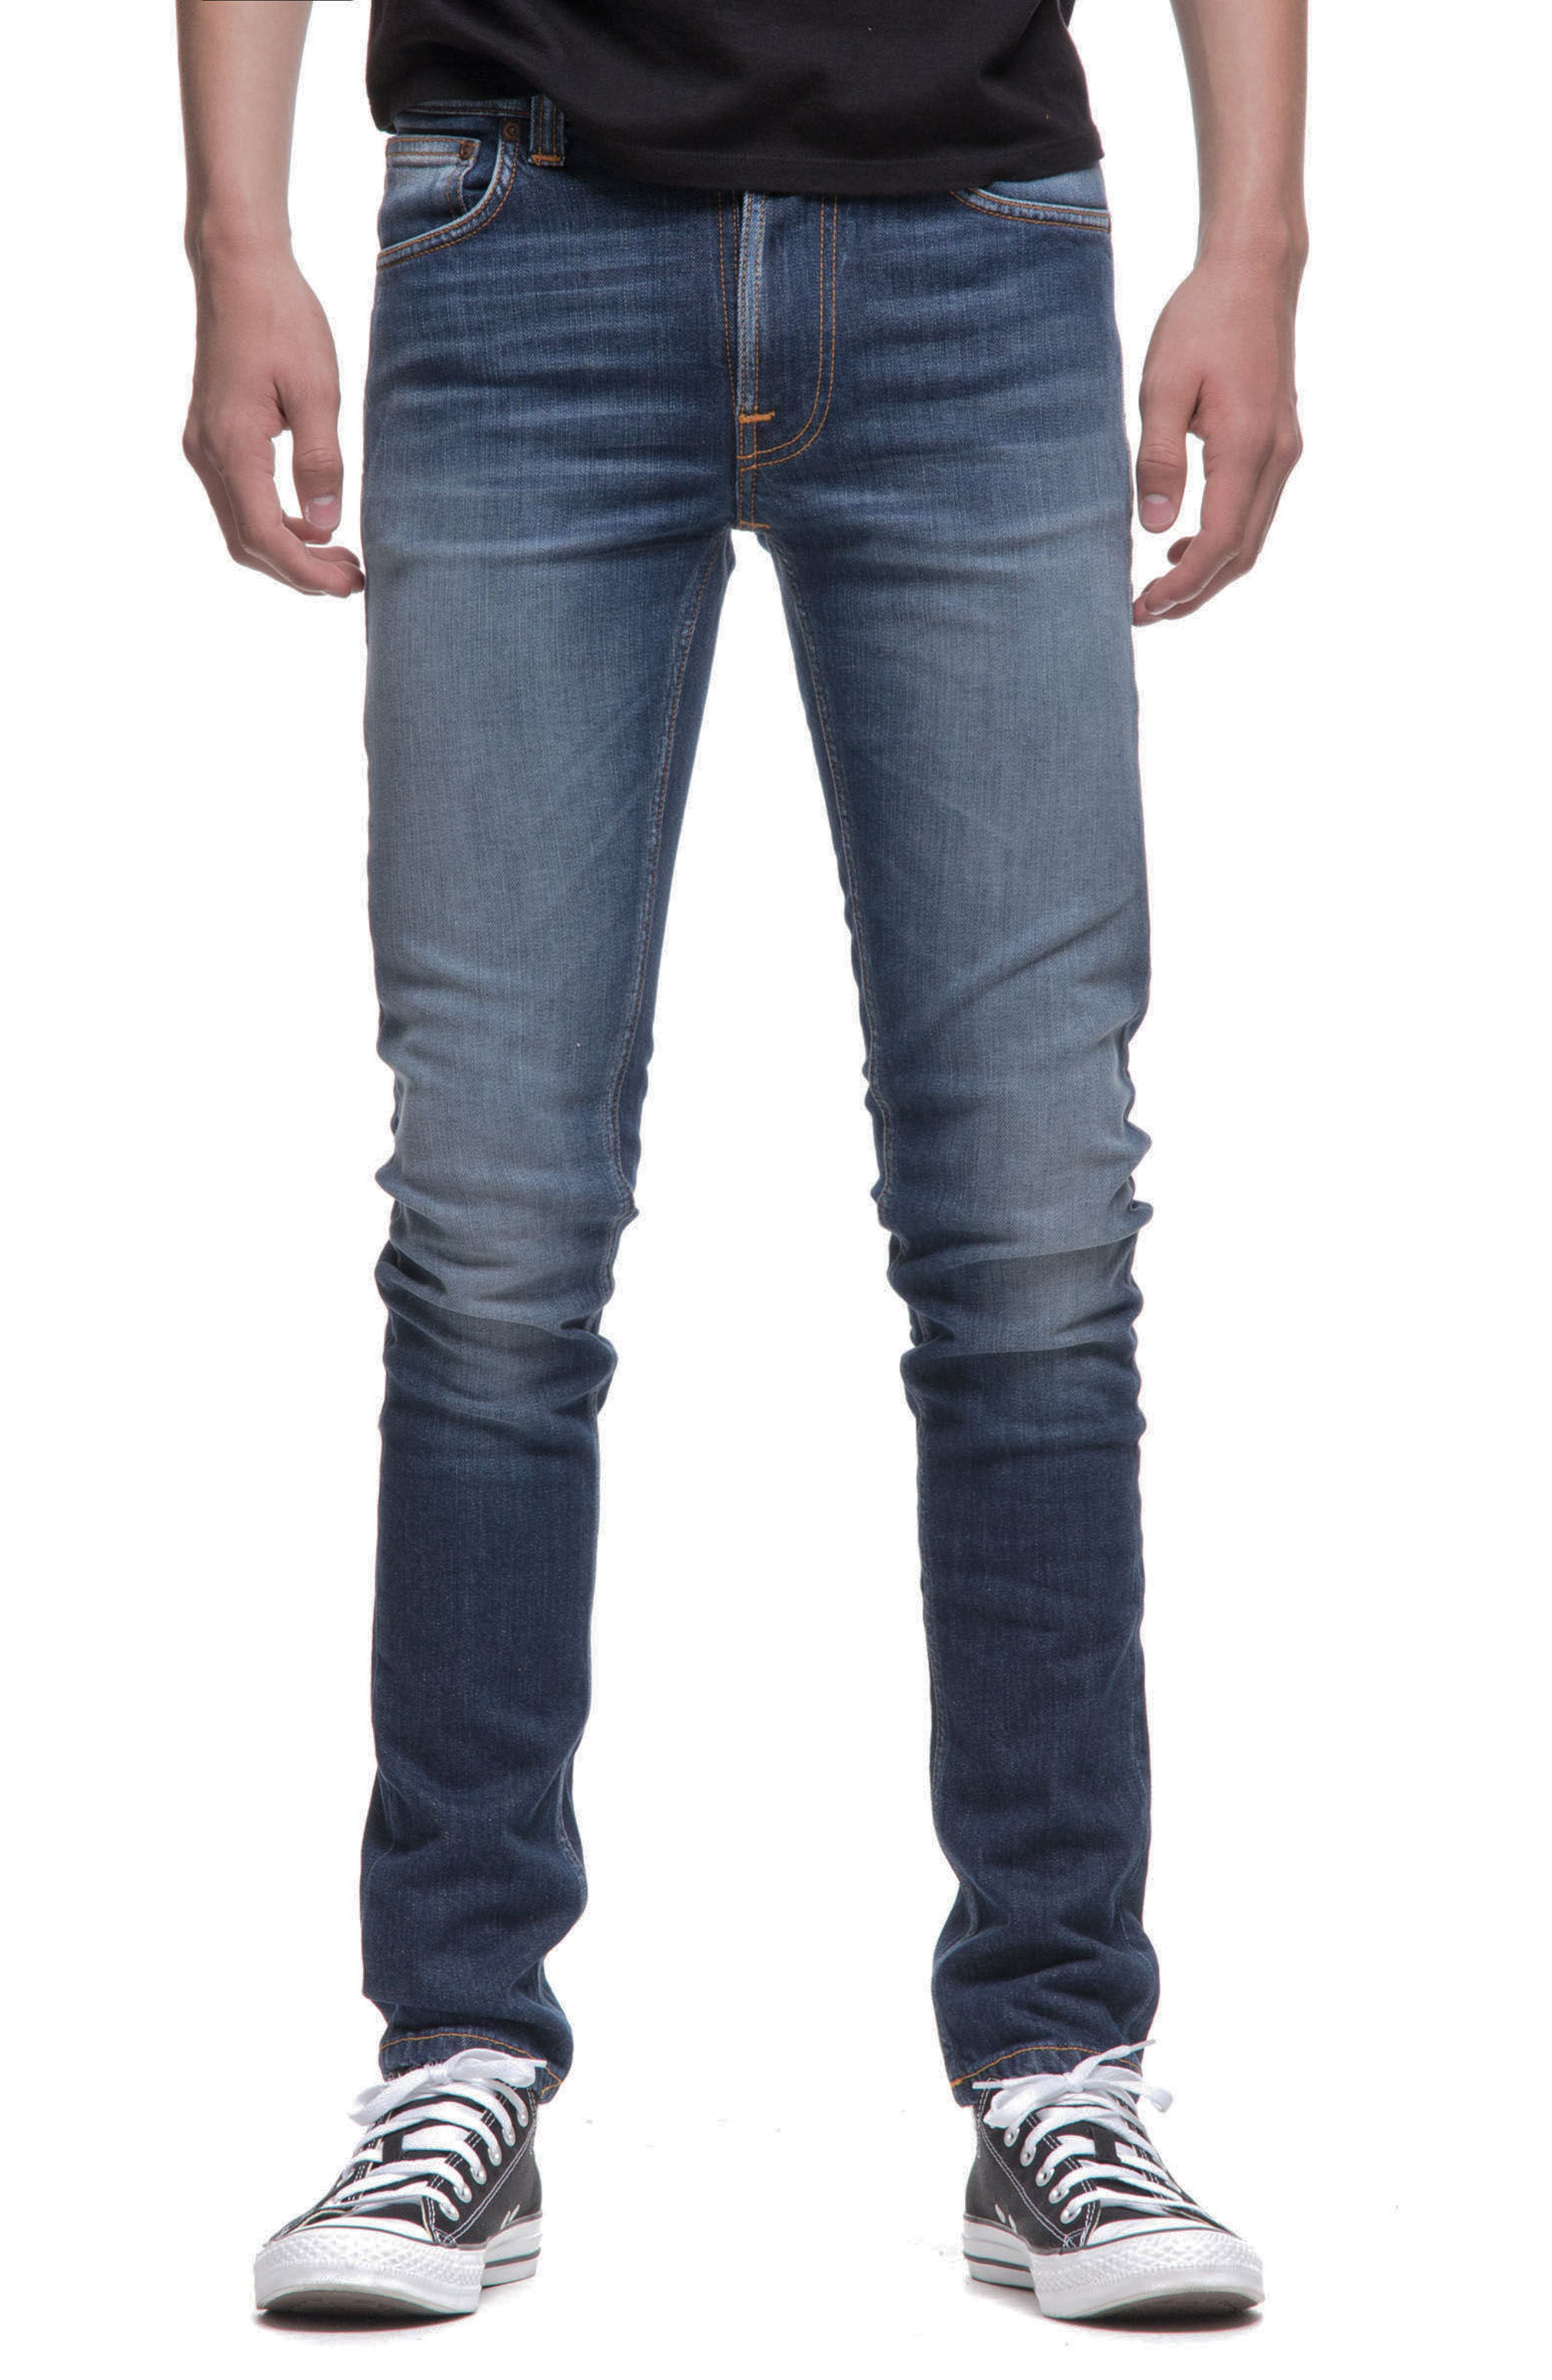 Alternate Image 1 Selected - Nudie Jeans Lean Dean Slouchy Slim Fit Jeans (Blue Ridge)